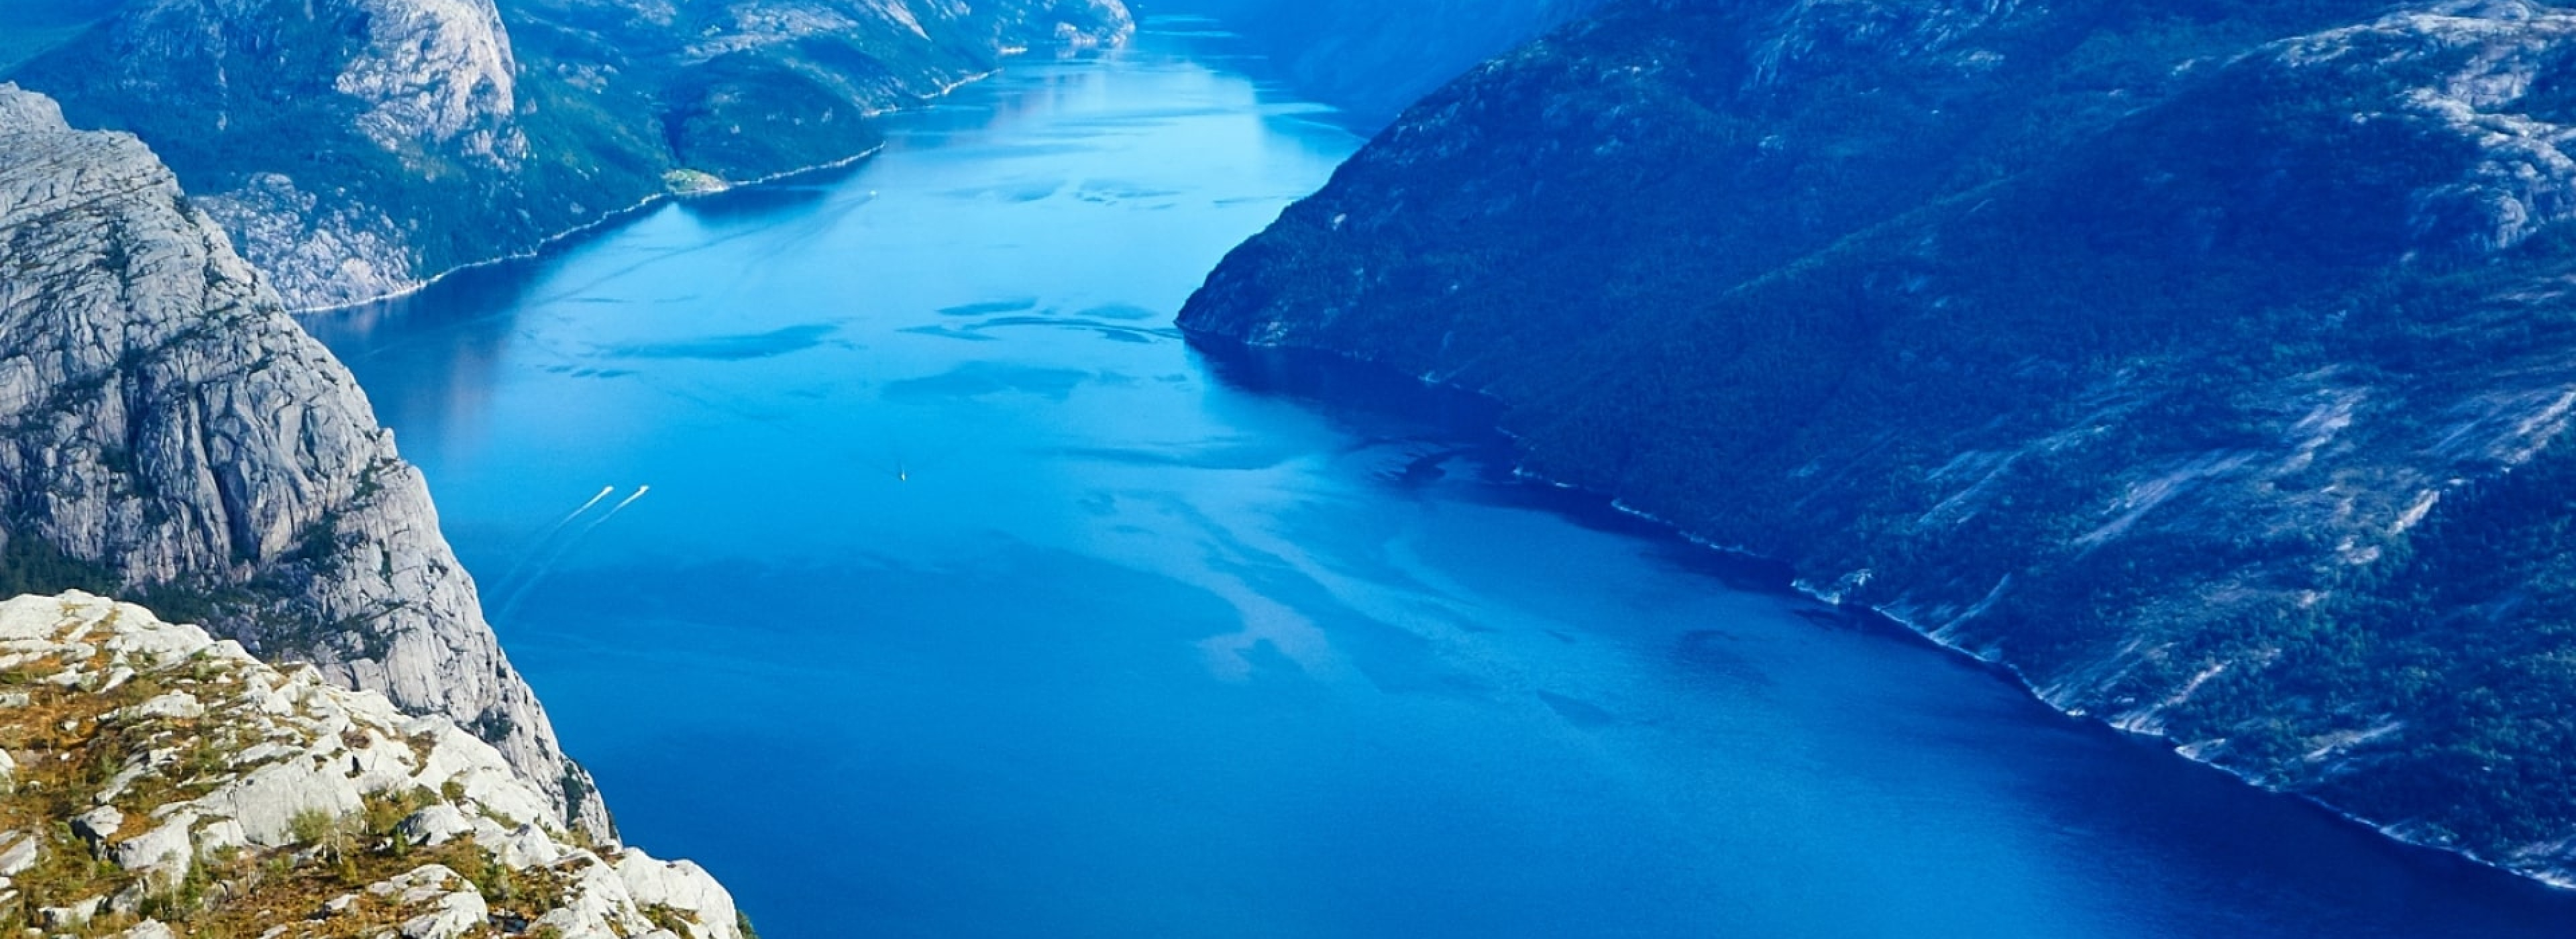 Norwegian fjords are definitely the highlight of your tour